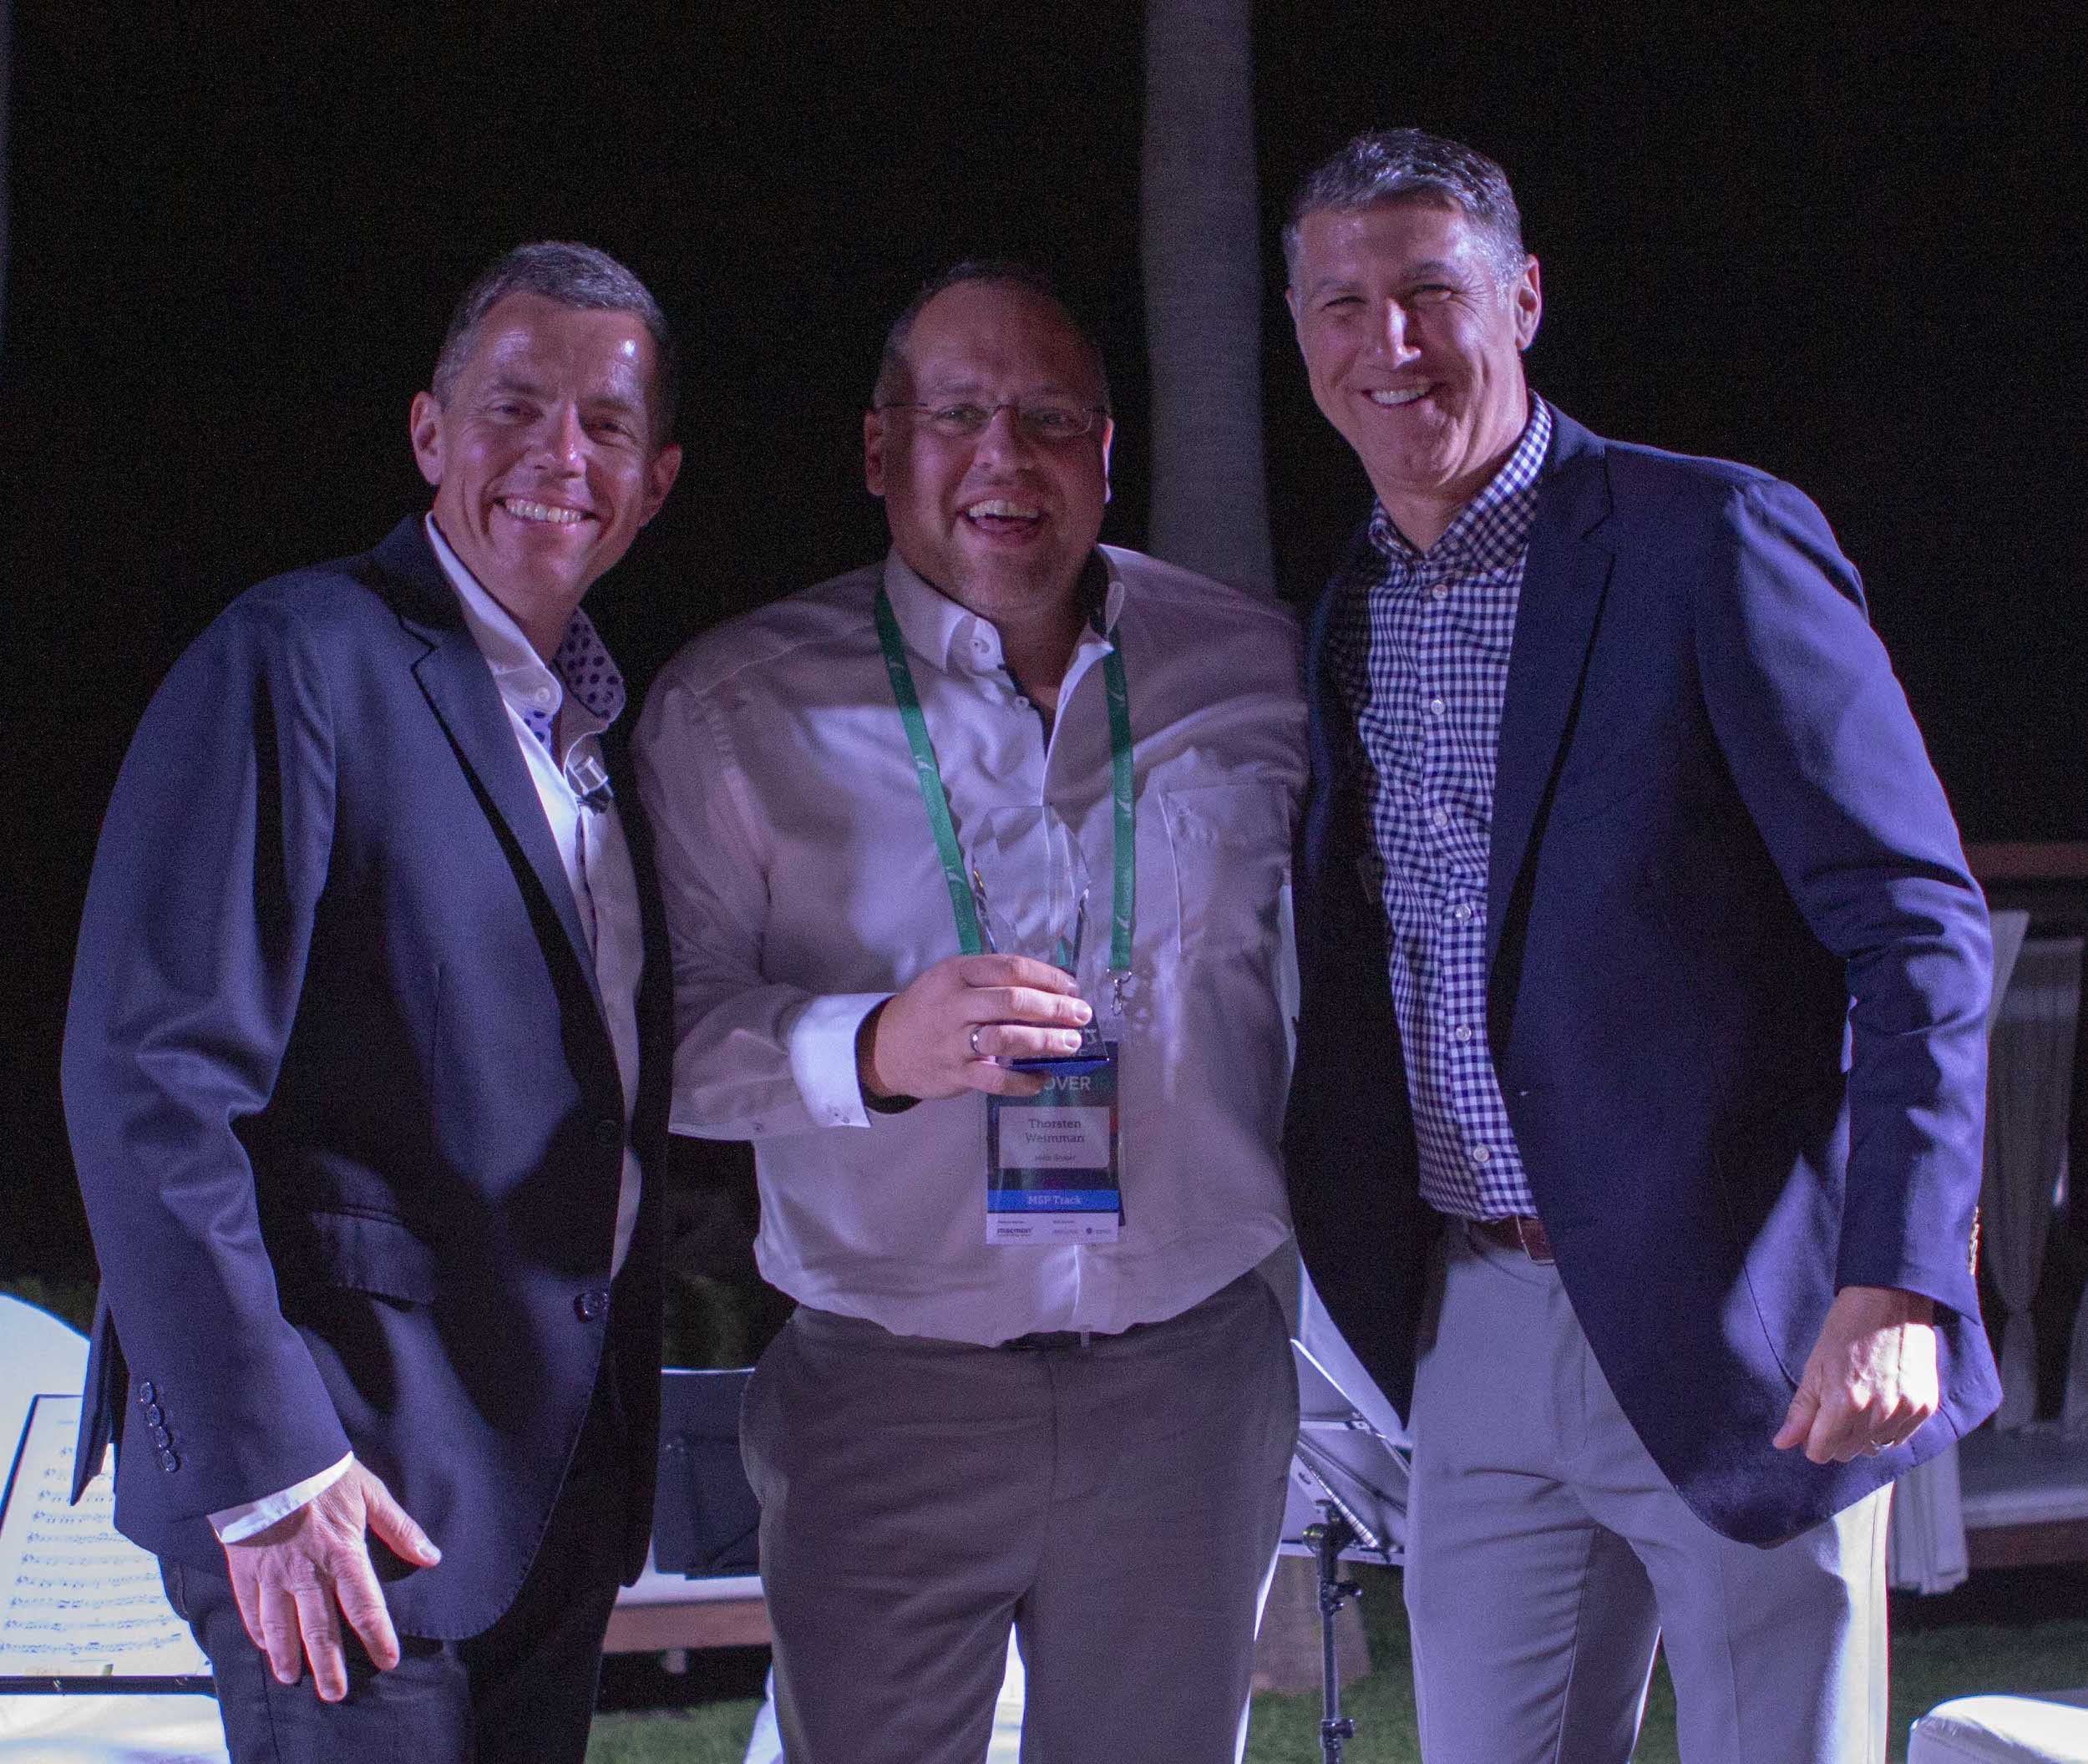 abtis ist EMEA Business Partner of the Year für E-Mail-Protection von Barracuda Networks